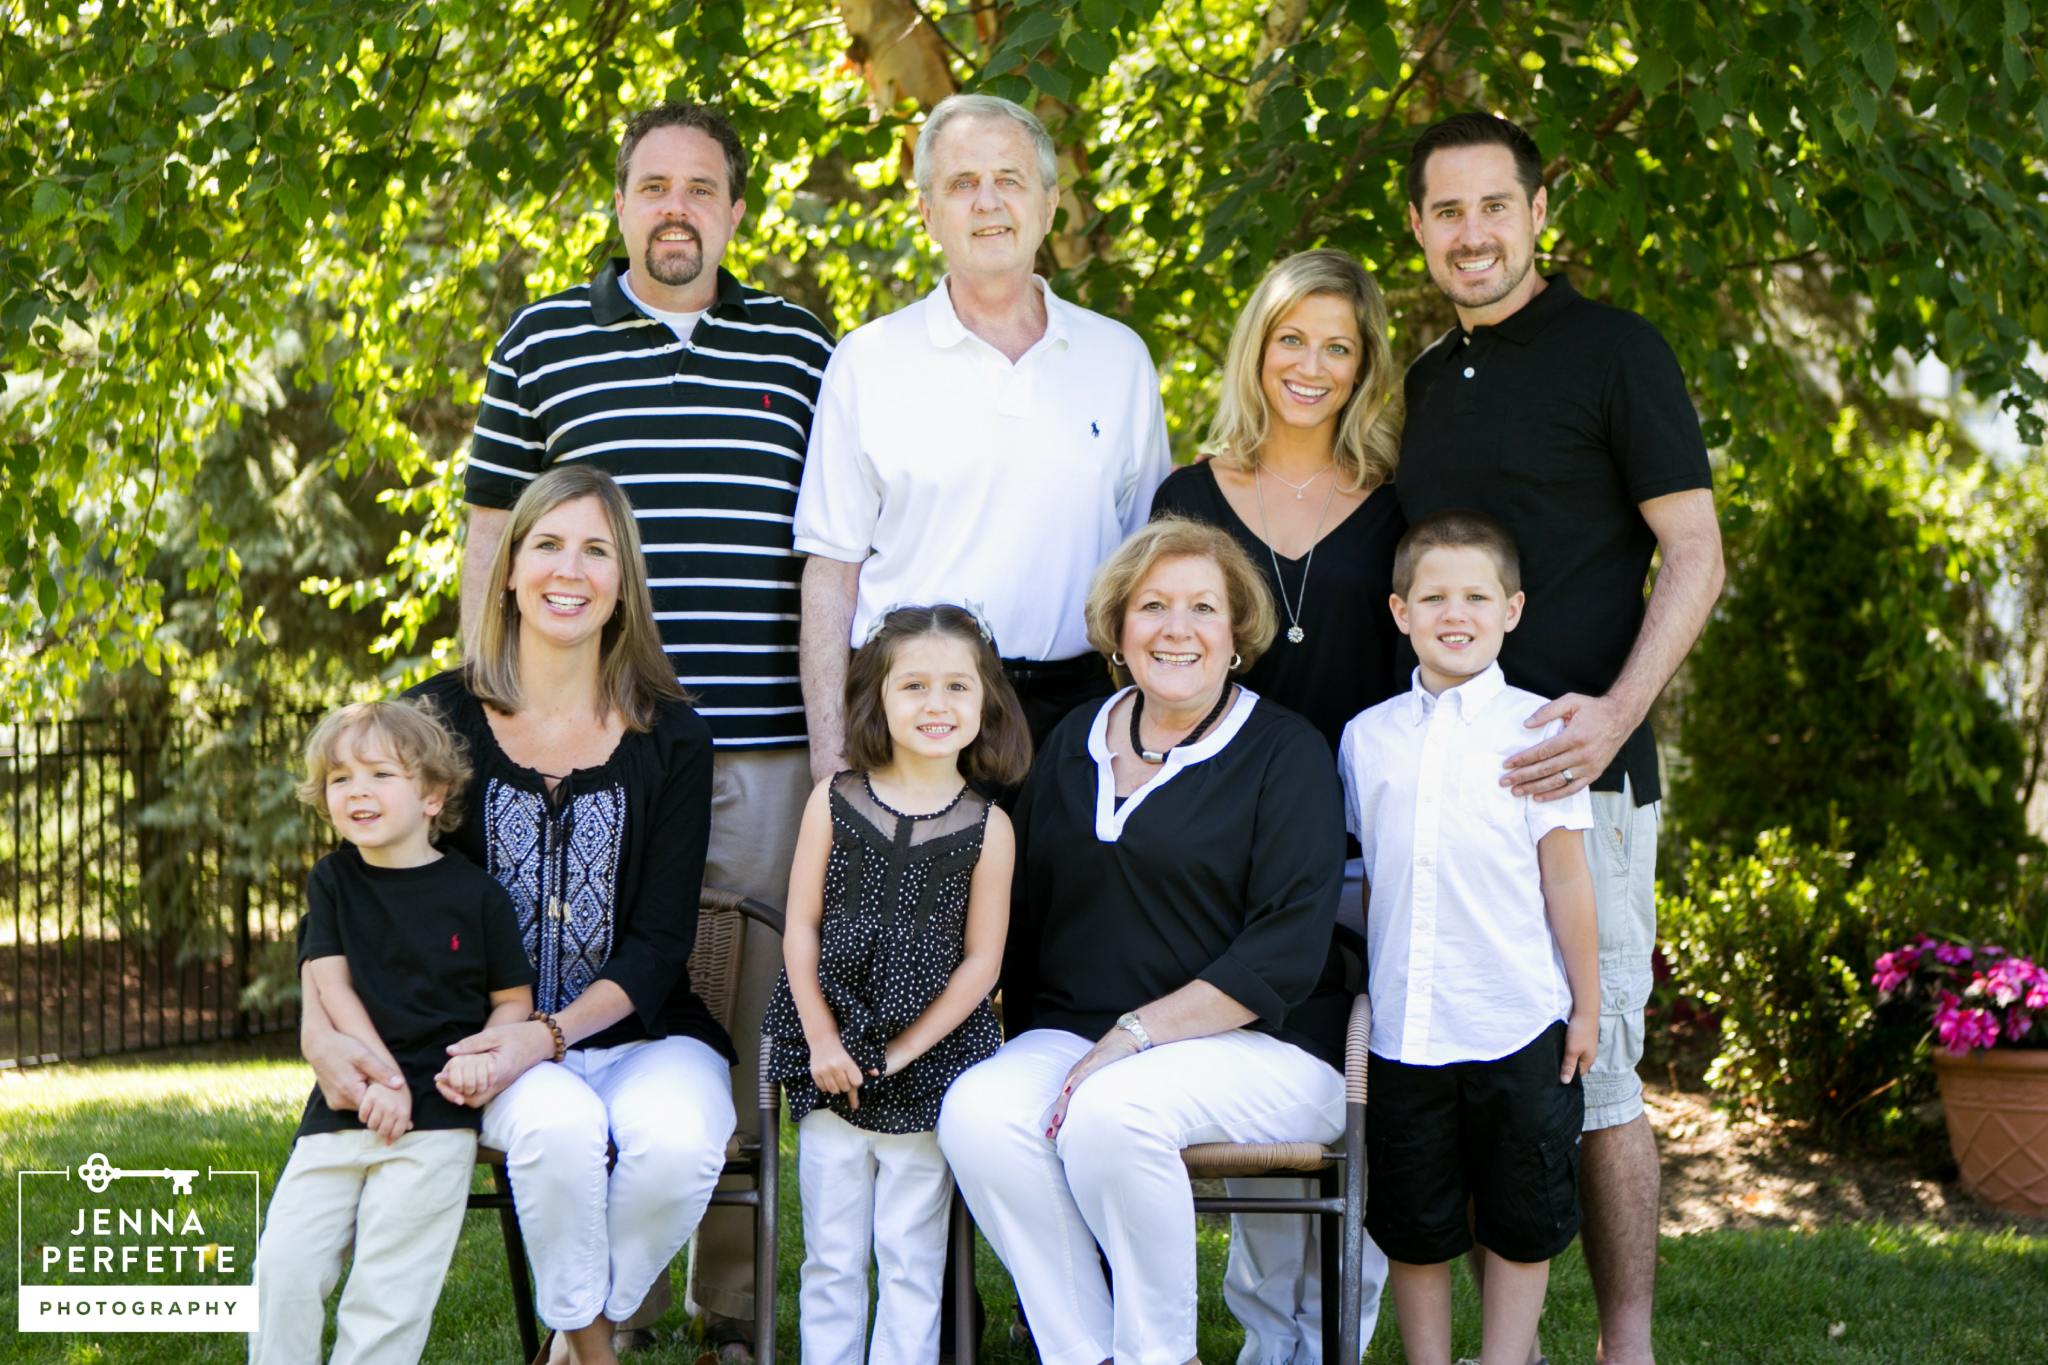 How You Should Dress Your Family for your Family Session Group Photo for Picture Perfect Photos